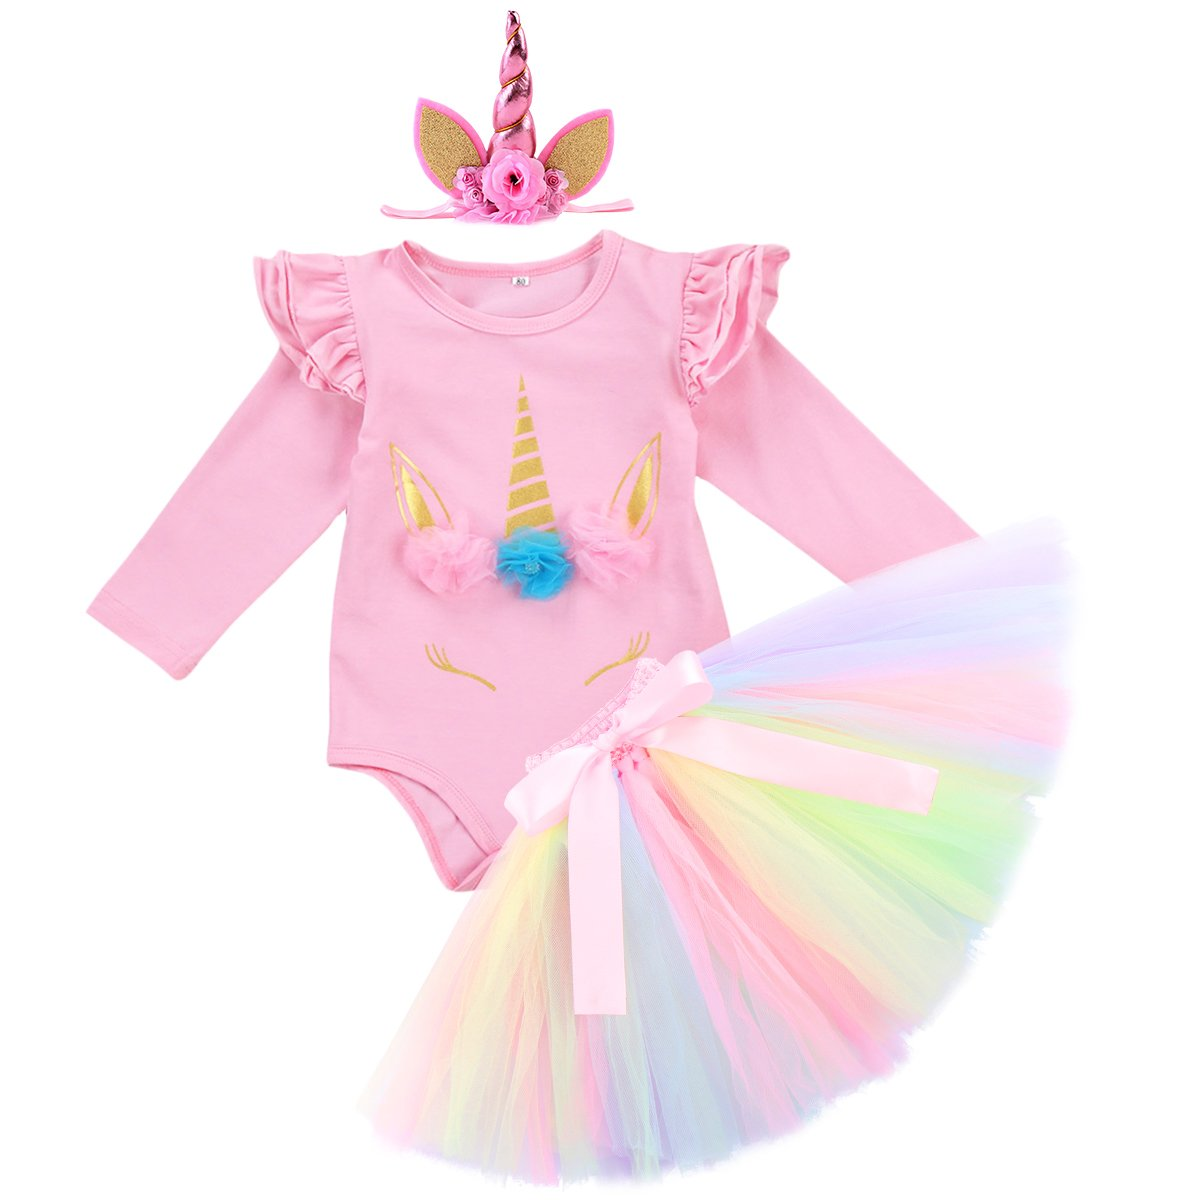 IWEMEK Baby Girls 1st 2nd Birthday Cake Smash Photo Shoot 3pcs Outfits Newborn Infant Princess Halloween Unicorn Costumes Romper Colorful Tutu Skirt Horn